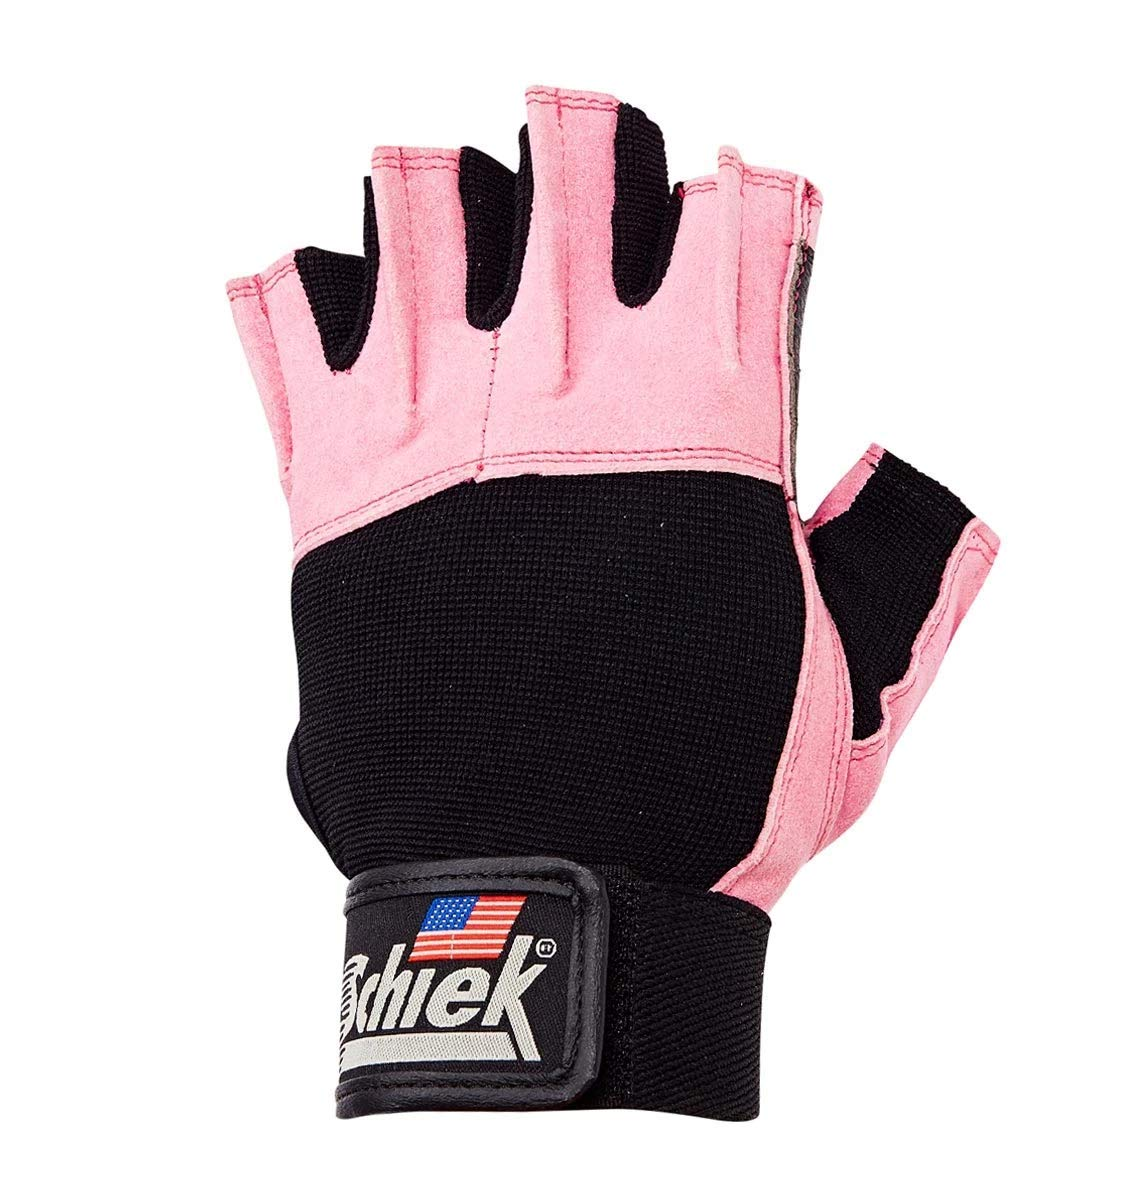 Schiek Sports Pink Lifting Gloves